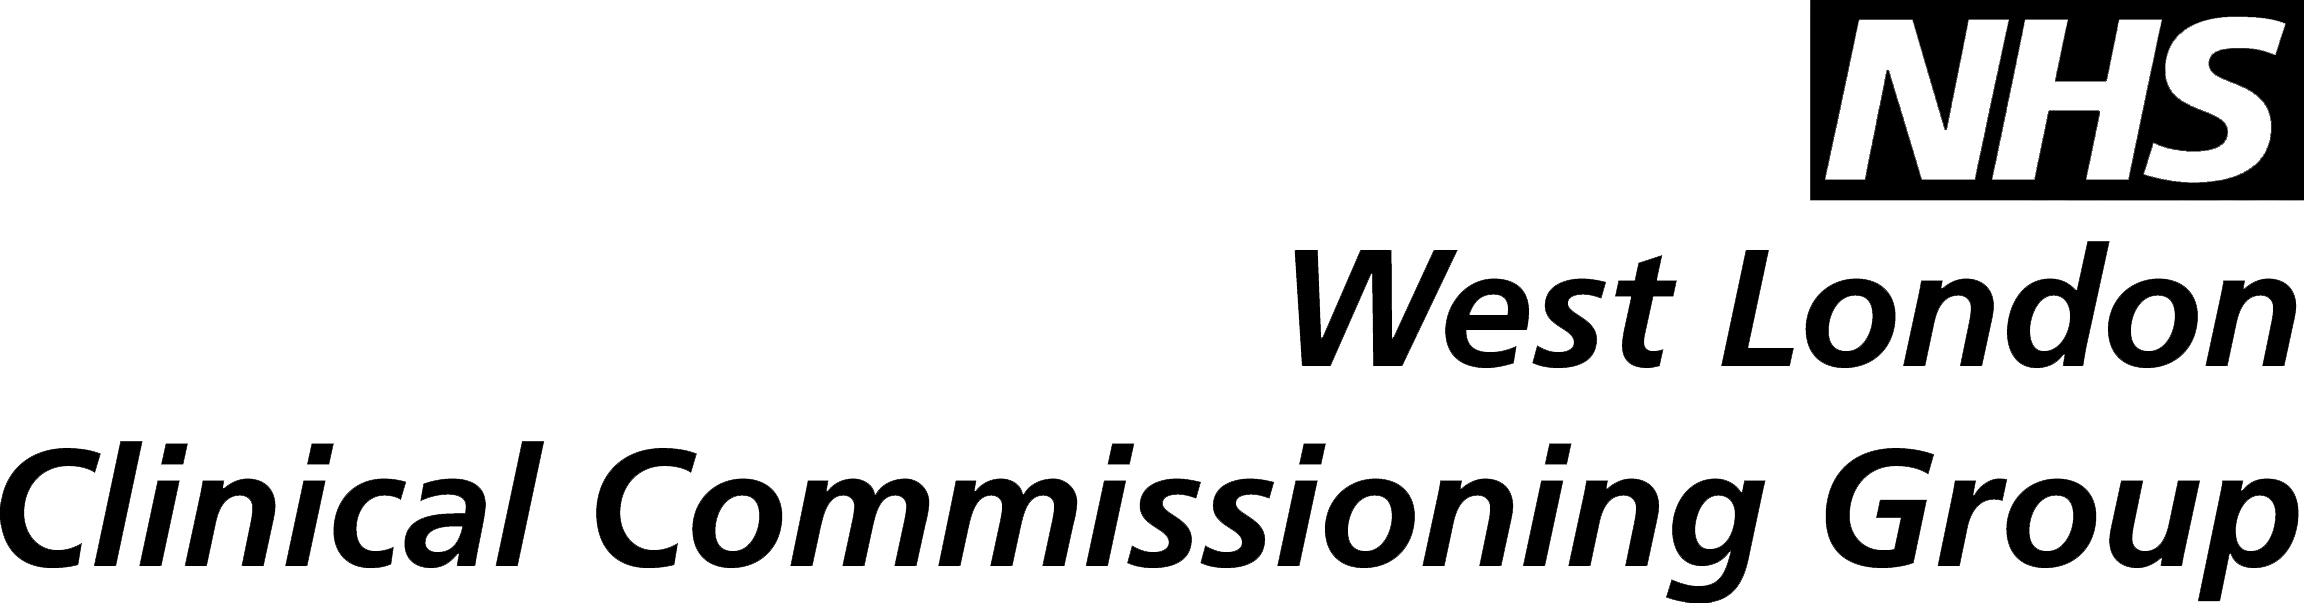 West London Clinical Commissioning Group logo